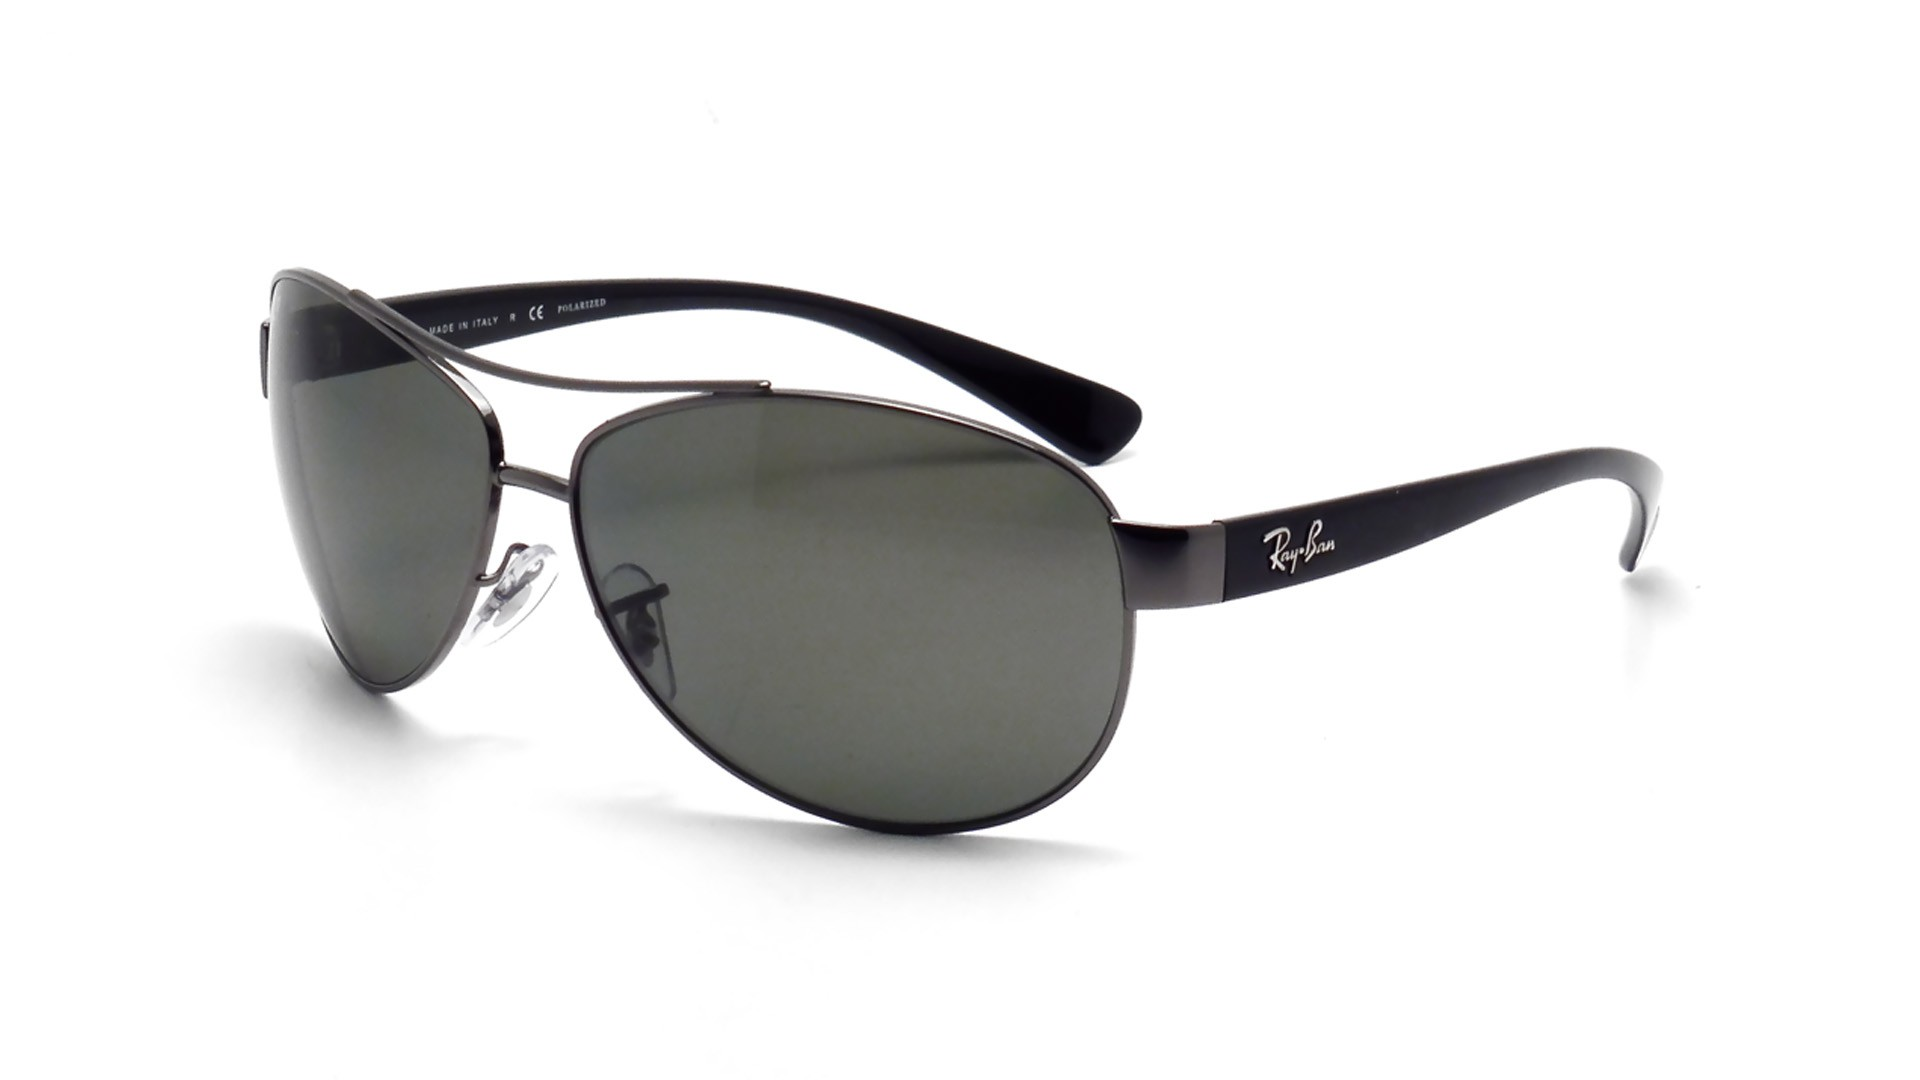 928baed02ce Sunglasses Ray-Ban RB3386 004 9A 67-13 Silver Large Polarized